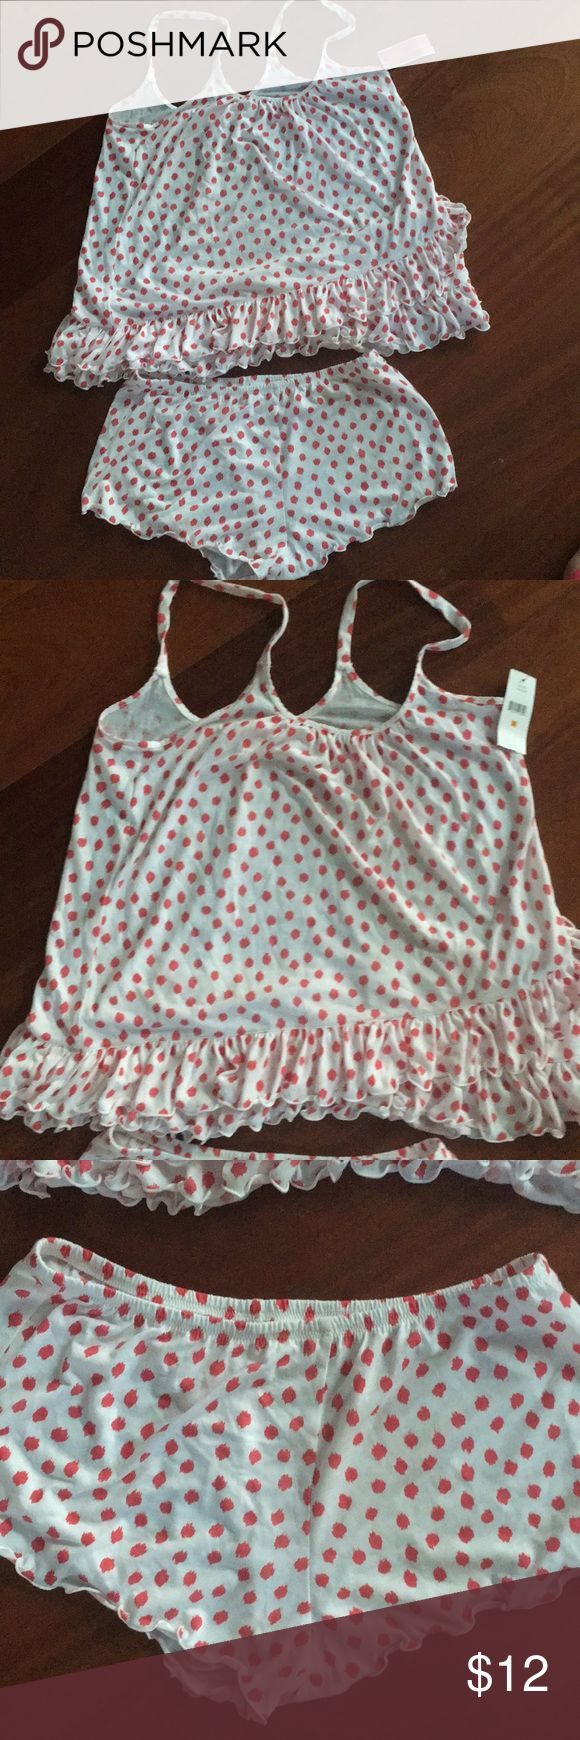 NWT Pajama set Tank and shorts set pajamas . Never worn! Oscar de la Renta Sleepwear Intimates & Sleepwear Pajamas